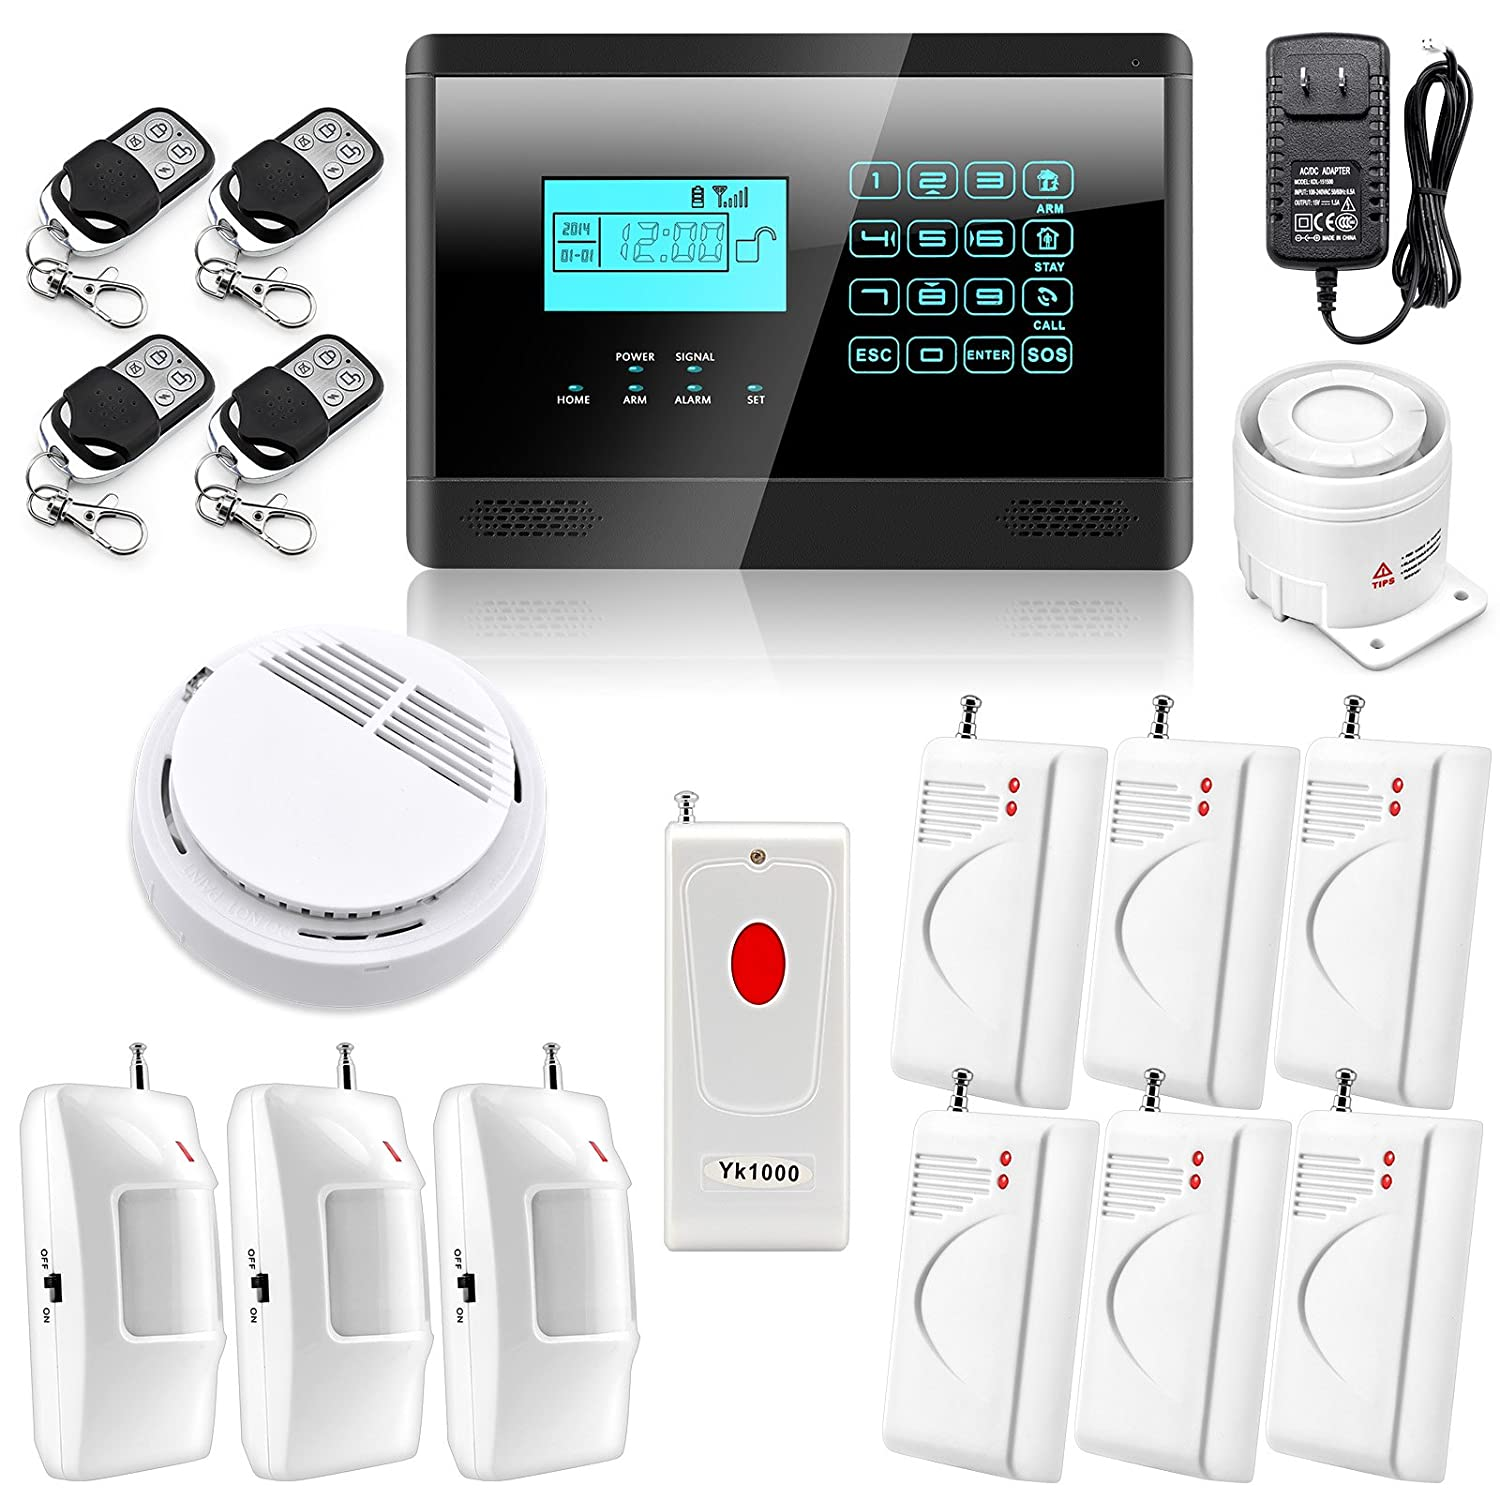 house burglar alarm. wolfguard wireless autodial smart home house security burglar alarm system 7